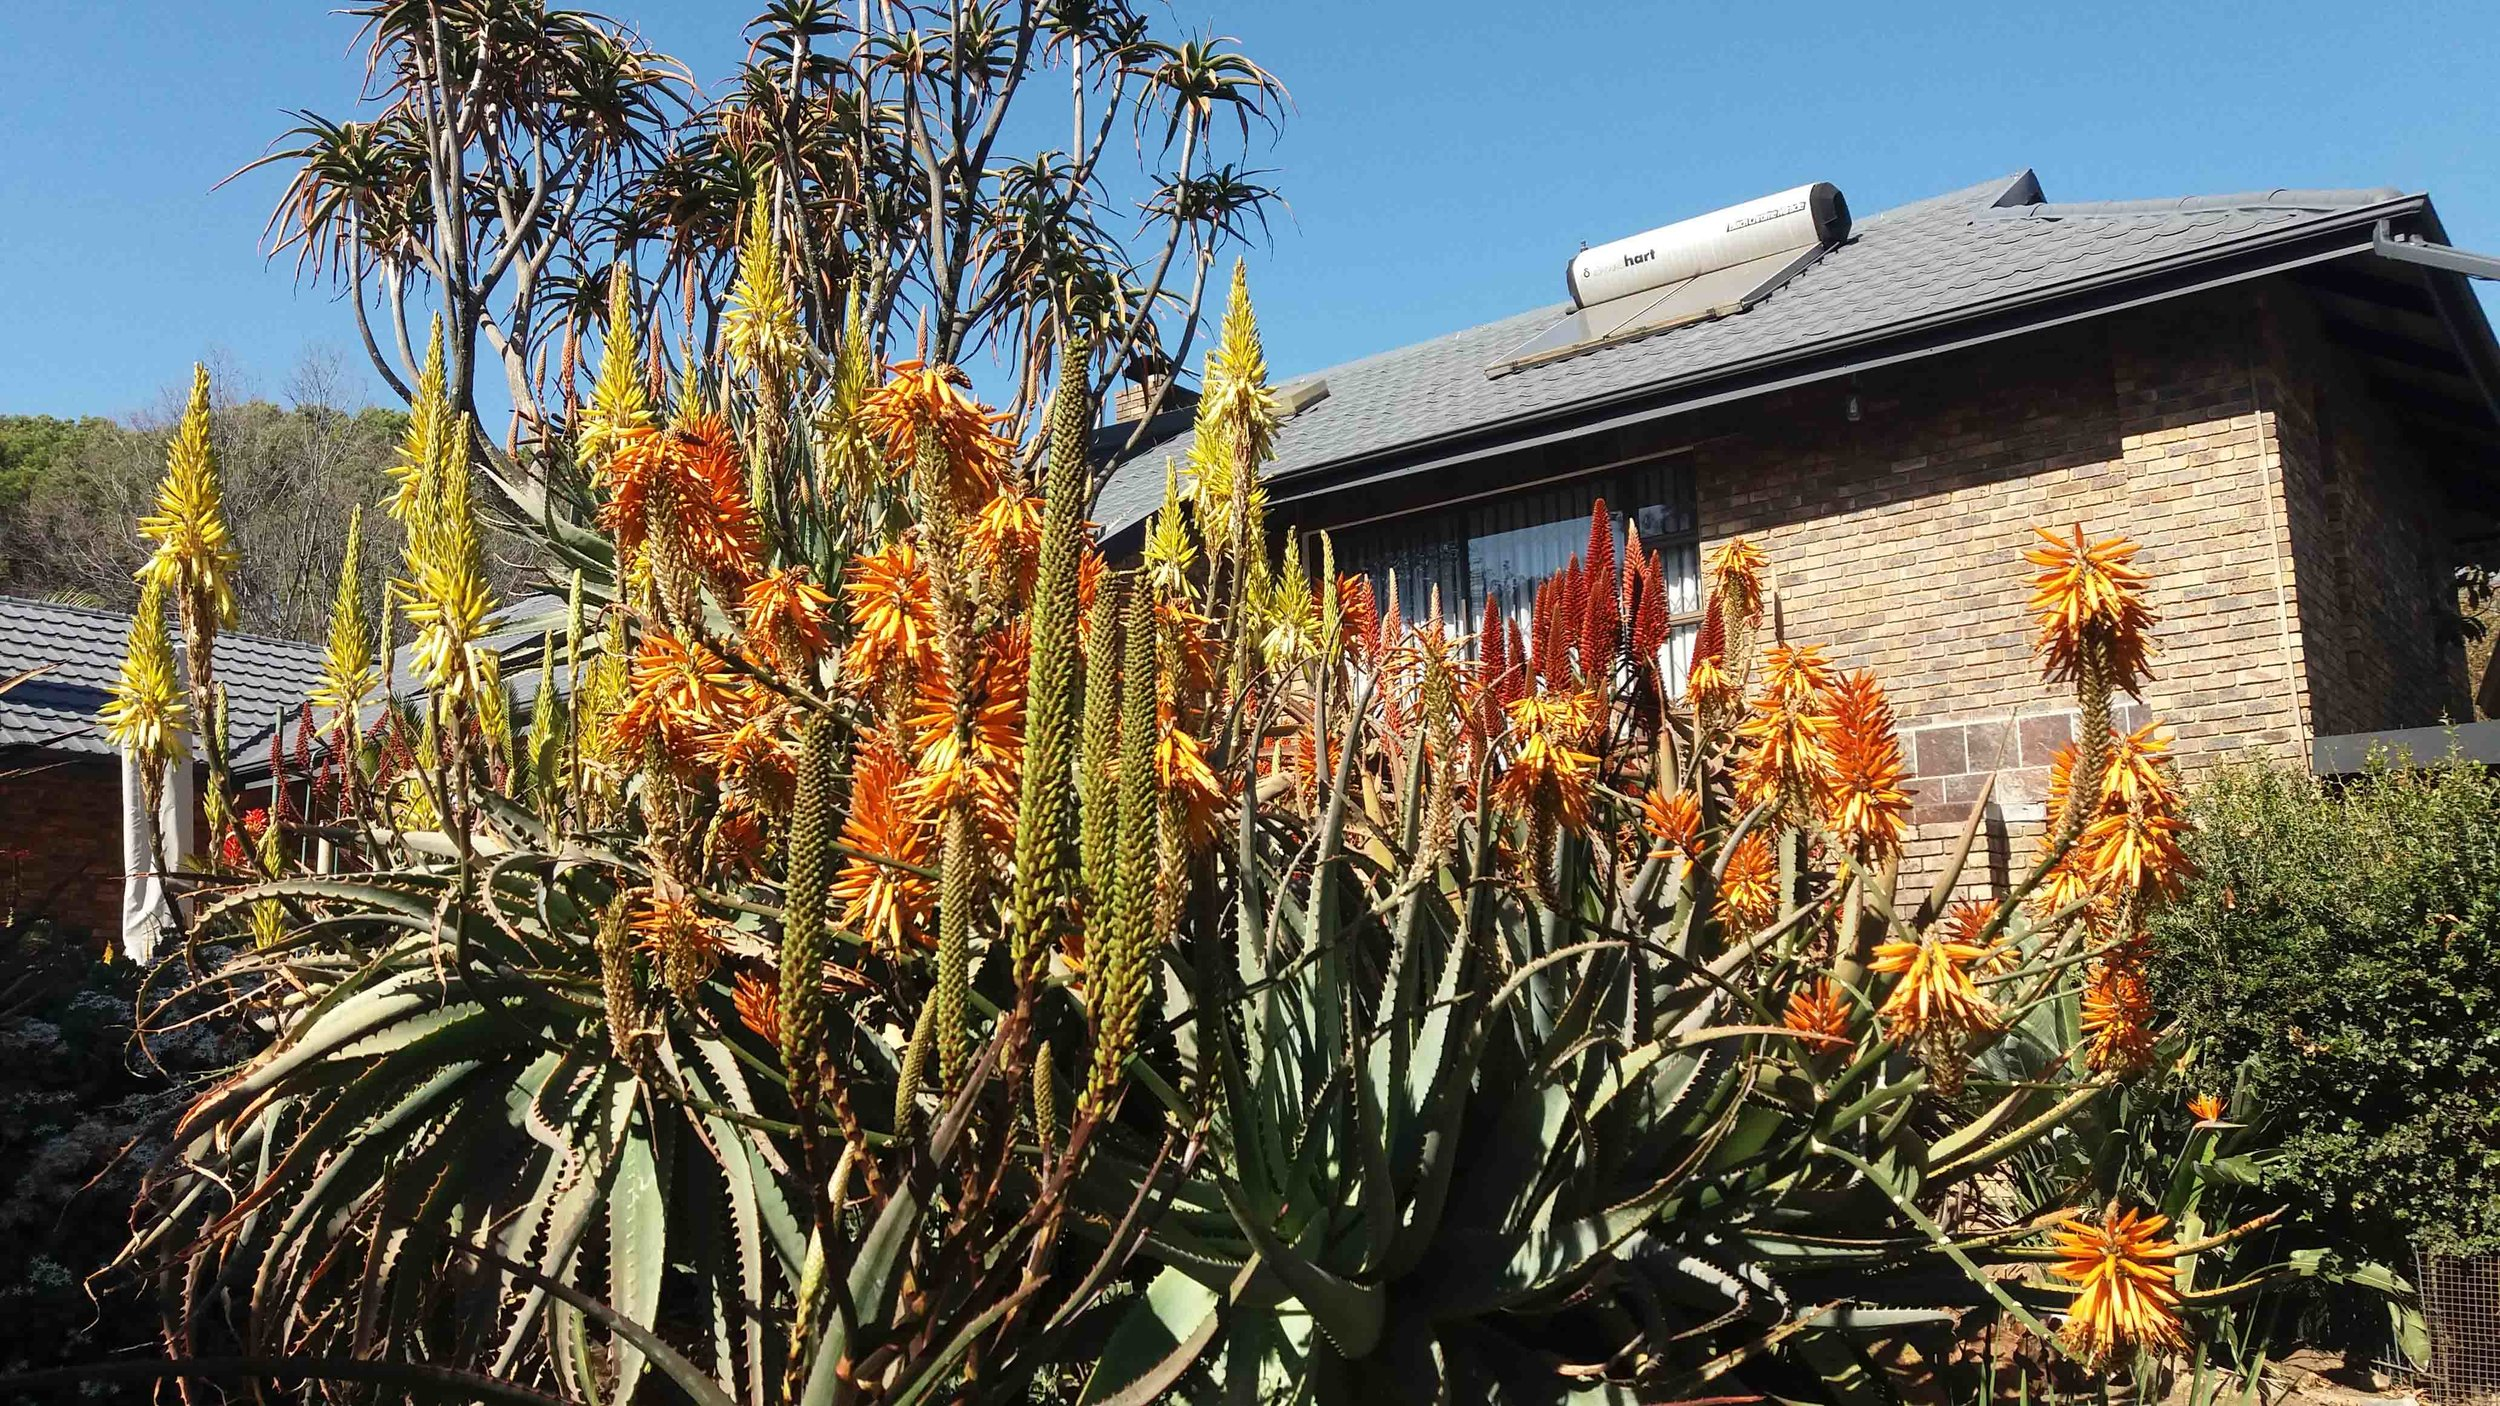 Aloe garden at Vine Street Nursery in Ferndale